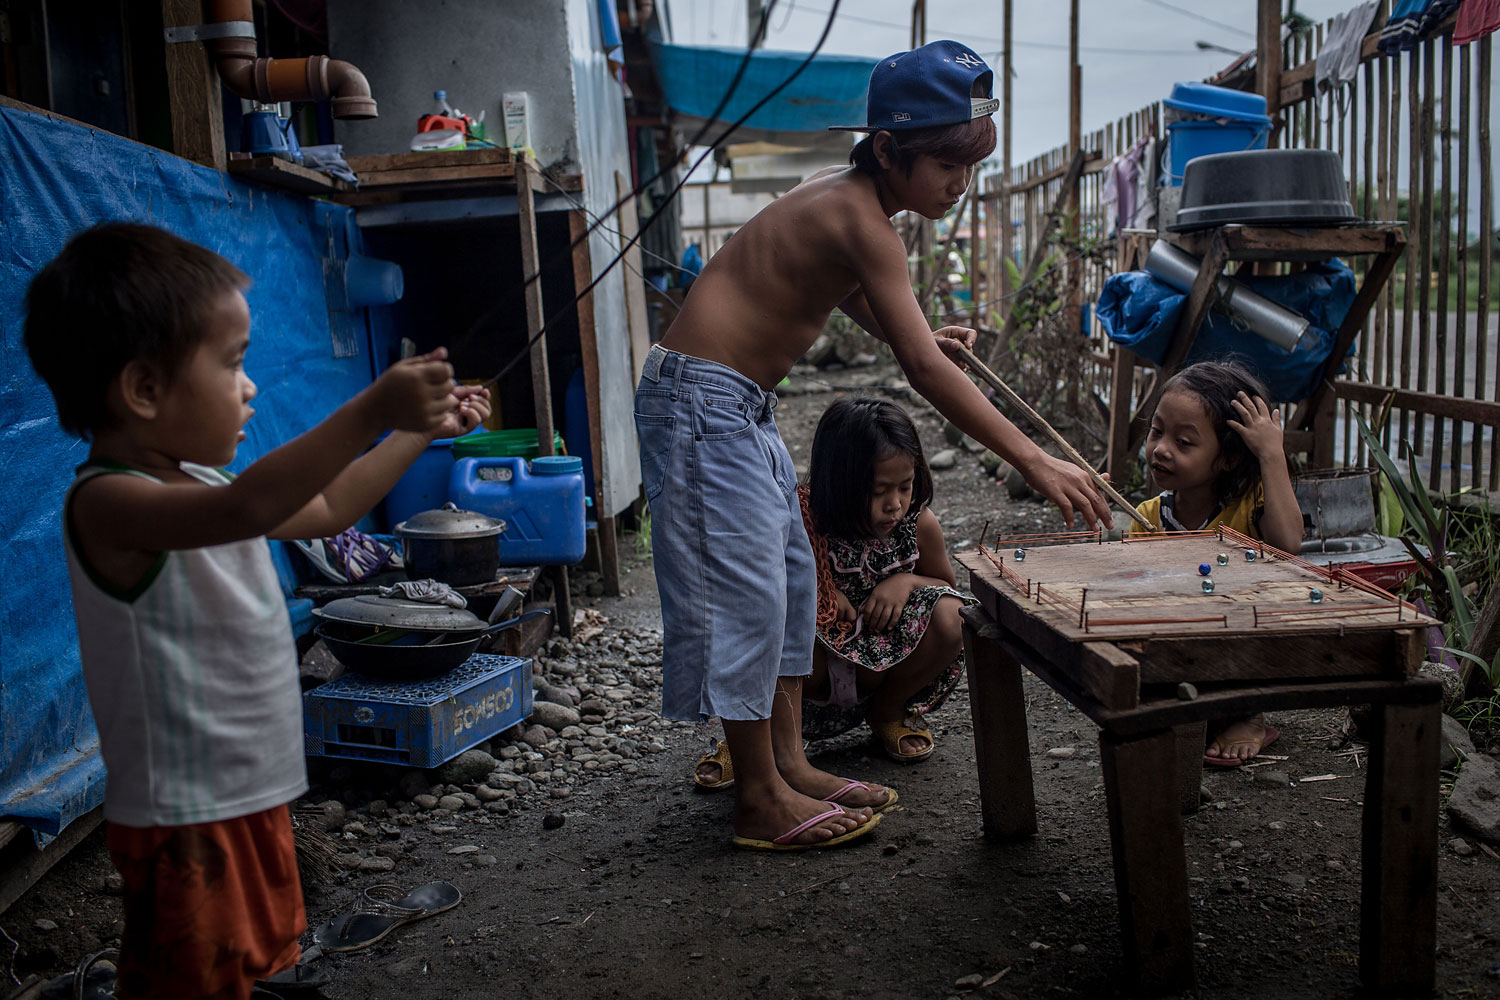 Kids watch on as a boy plays pool with marbles on a makeshift pool table in a temporary bunk house complex on April 16, 2014 in Tacloban.